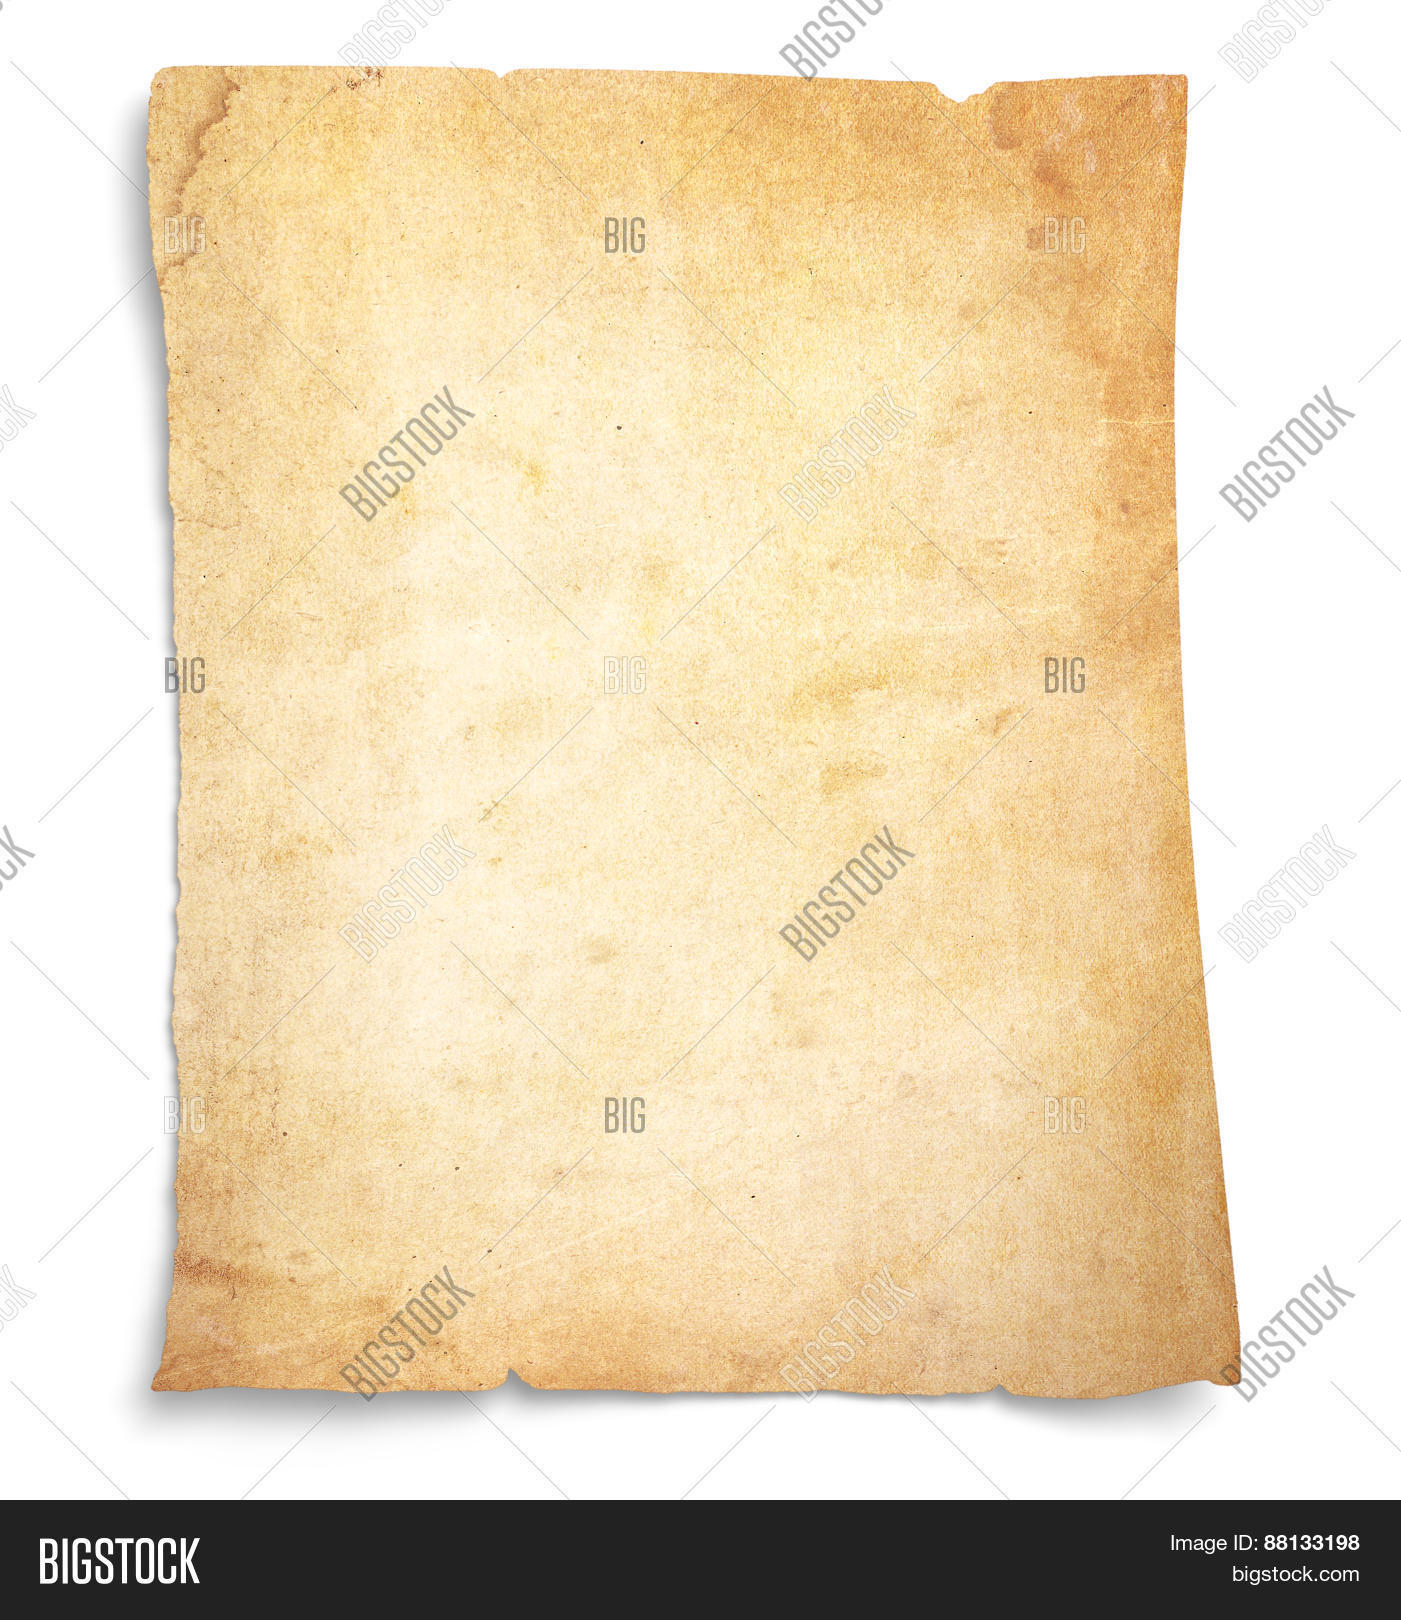 Very Old, Stained Blank Paper Image & Photo | Bigstock